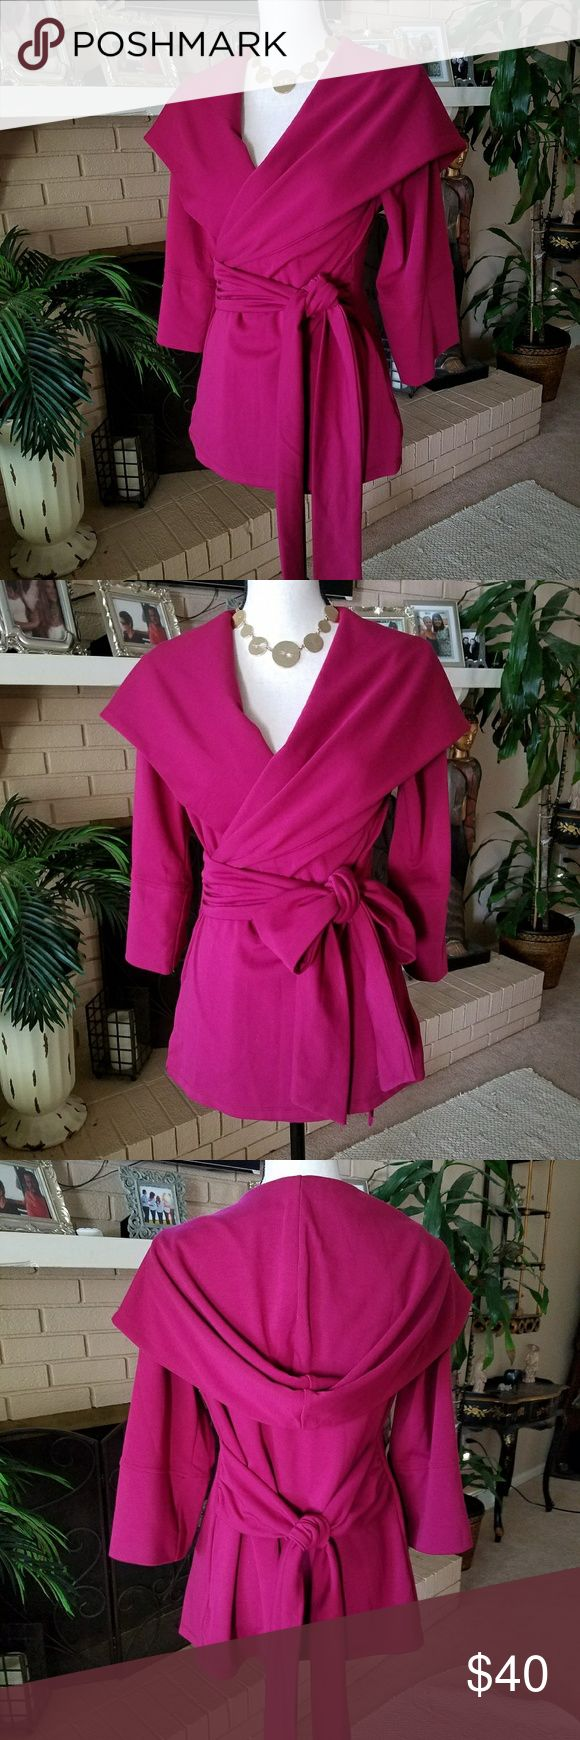 Wrap Cardigan Akira Red label Super Soft & Cozy Hooded Wrap cardigan jacket by Akira Chicago Red Label ***Sz large but fits like a med to me*** Im 5'5/135lbs/36D & it fits me perfect  Fushia color  (pics true to color) Worn once Soooo Versatile! Dress it up or wear it to yoga!  No flaws  Will Trade BUNDLE TO SAVE AKIRA Jackets & Coats